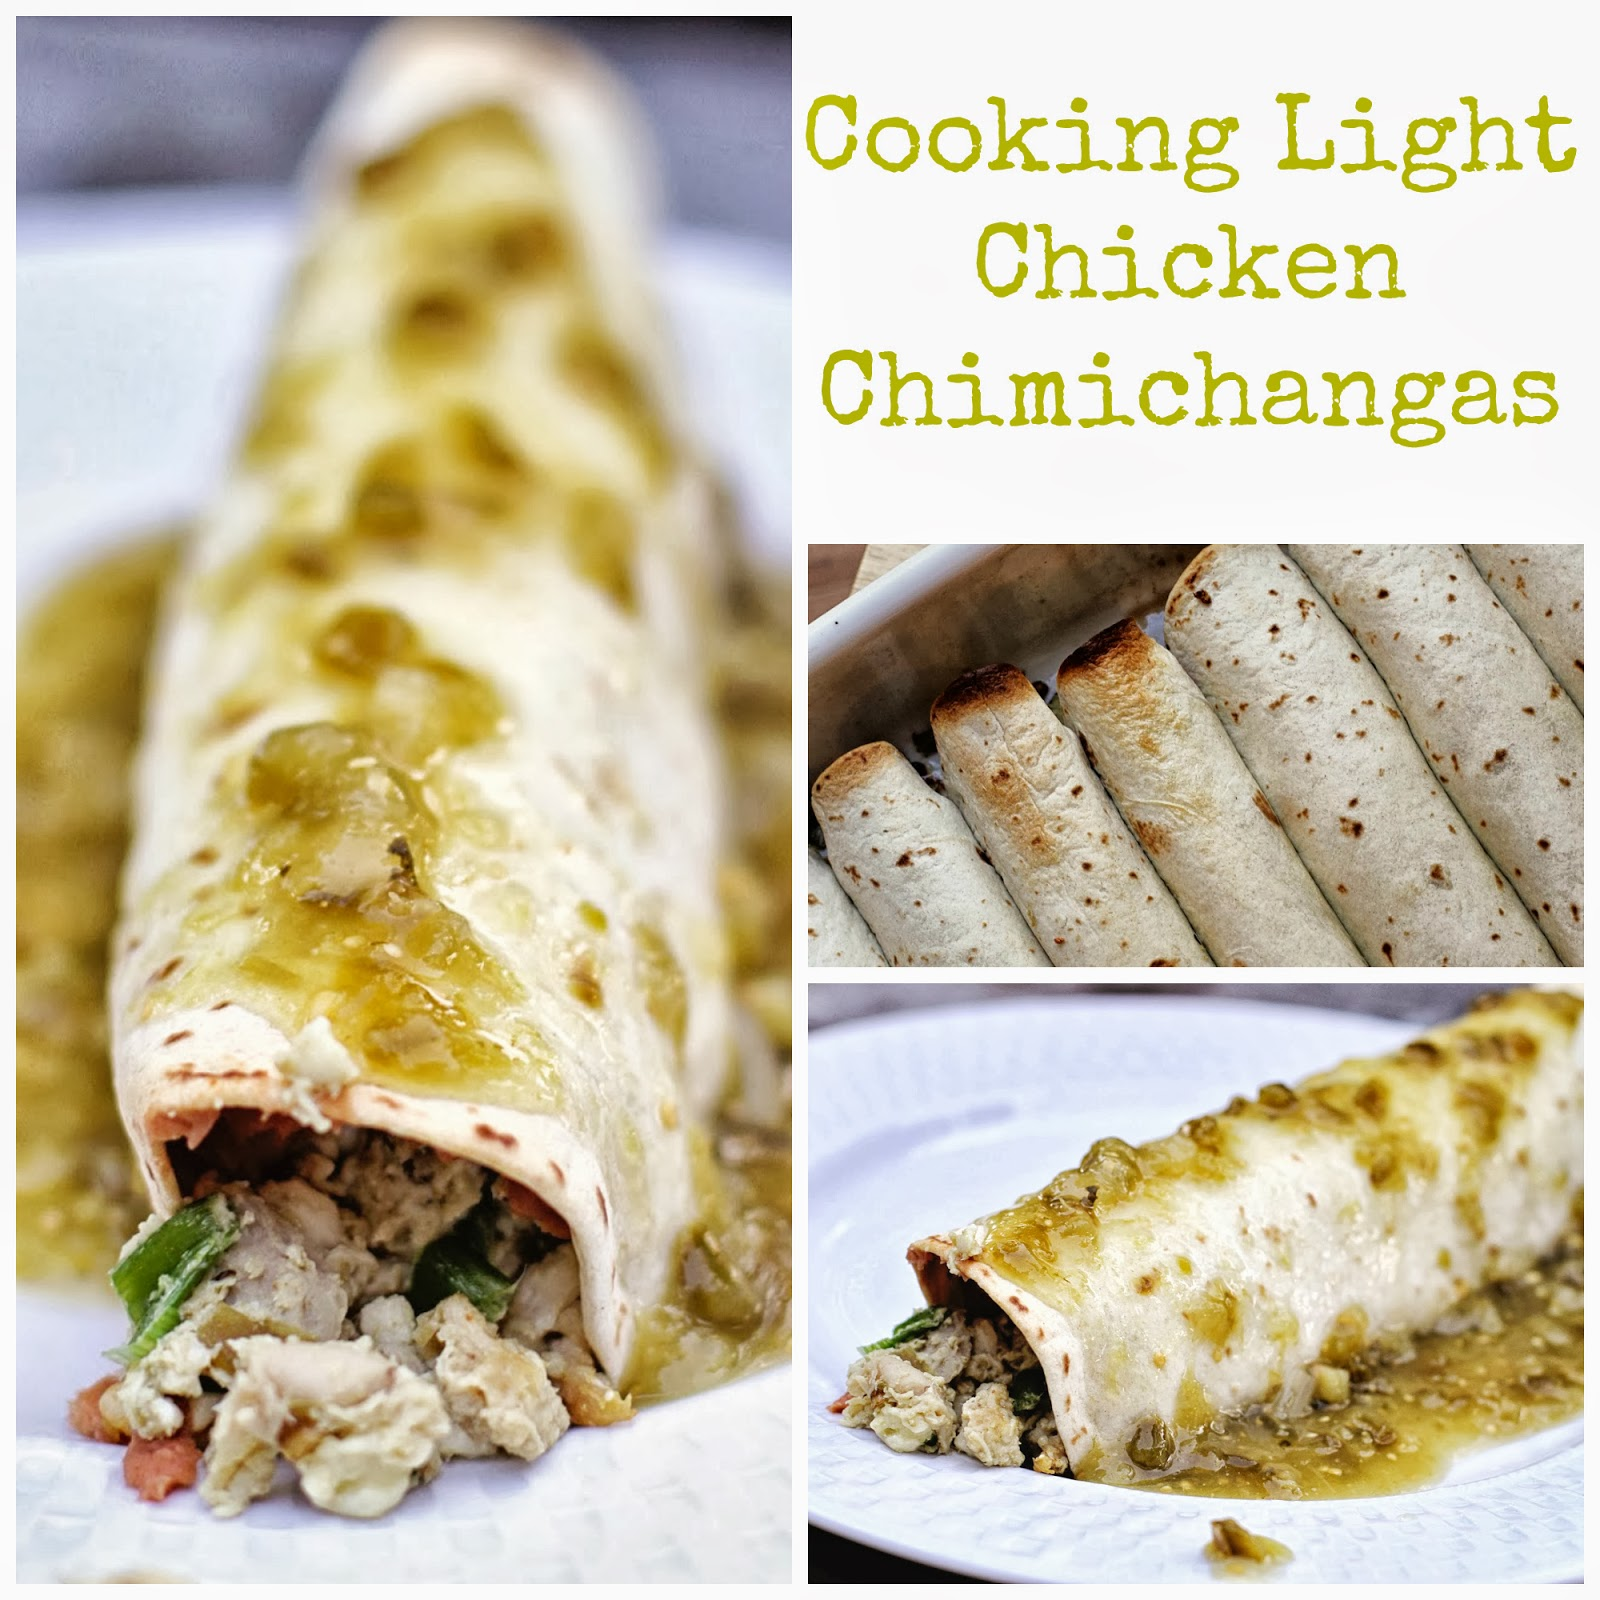 A Million Years Ago (also Known As 2010), I Posted A Recipe For Cooking  Light Chicken Chimichangas That Iu0027d Made For The First Time.